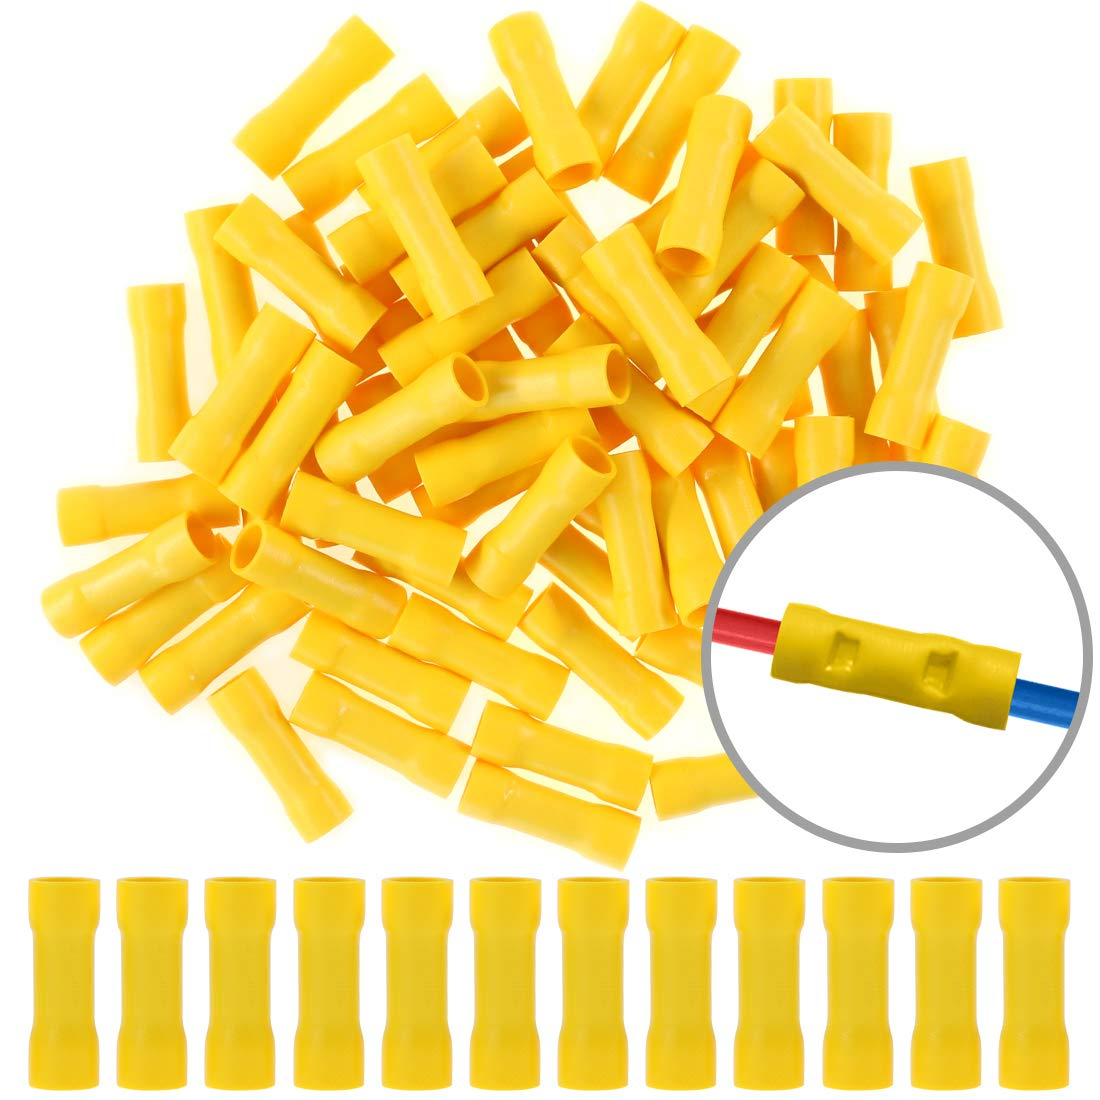 Hilitchi 100pcs 12-10 Gauge Butt Insulated Splice Terminals Electrical Wire Crimp Connectors Yellow // 12-10AWG